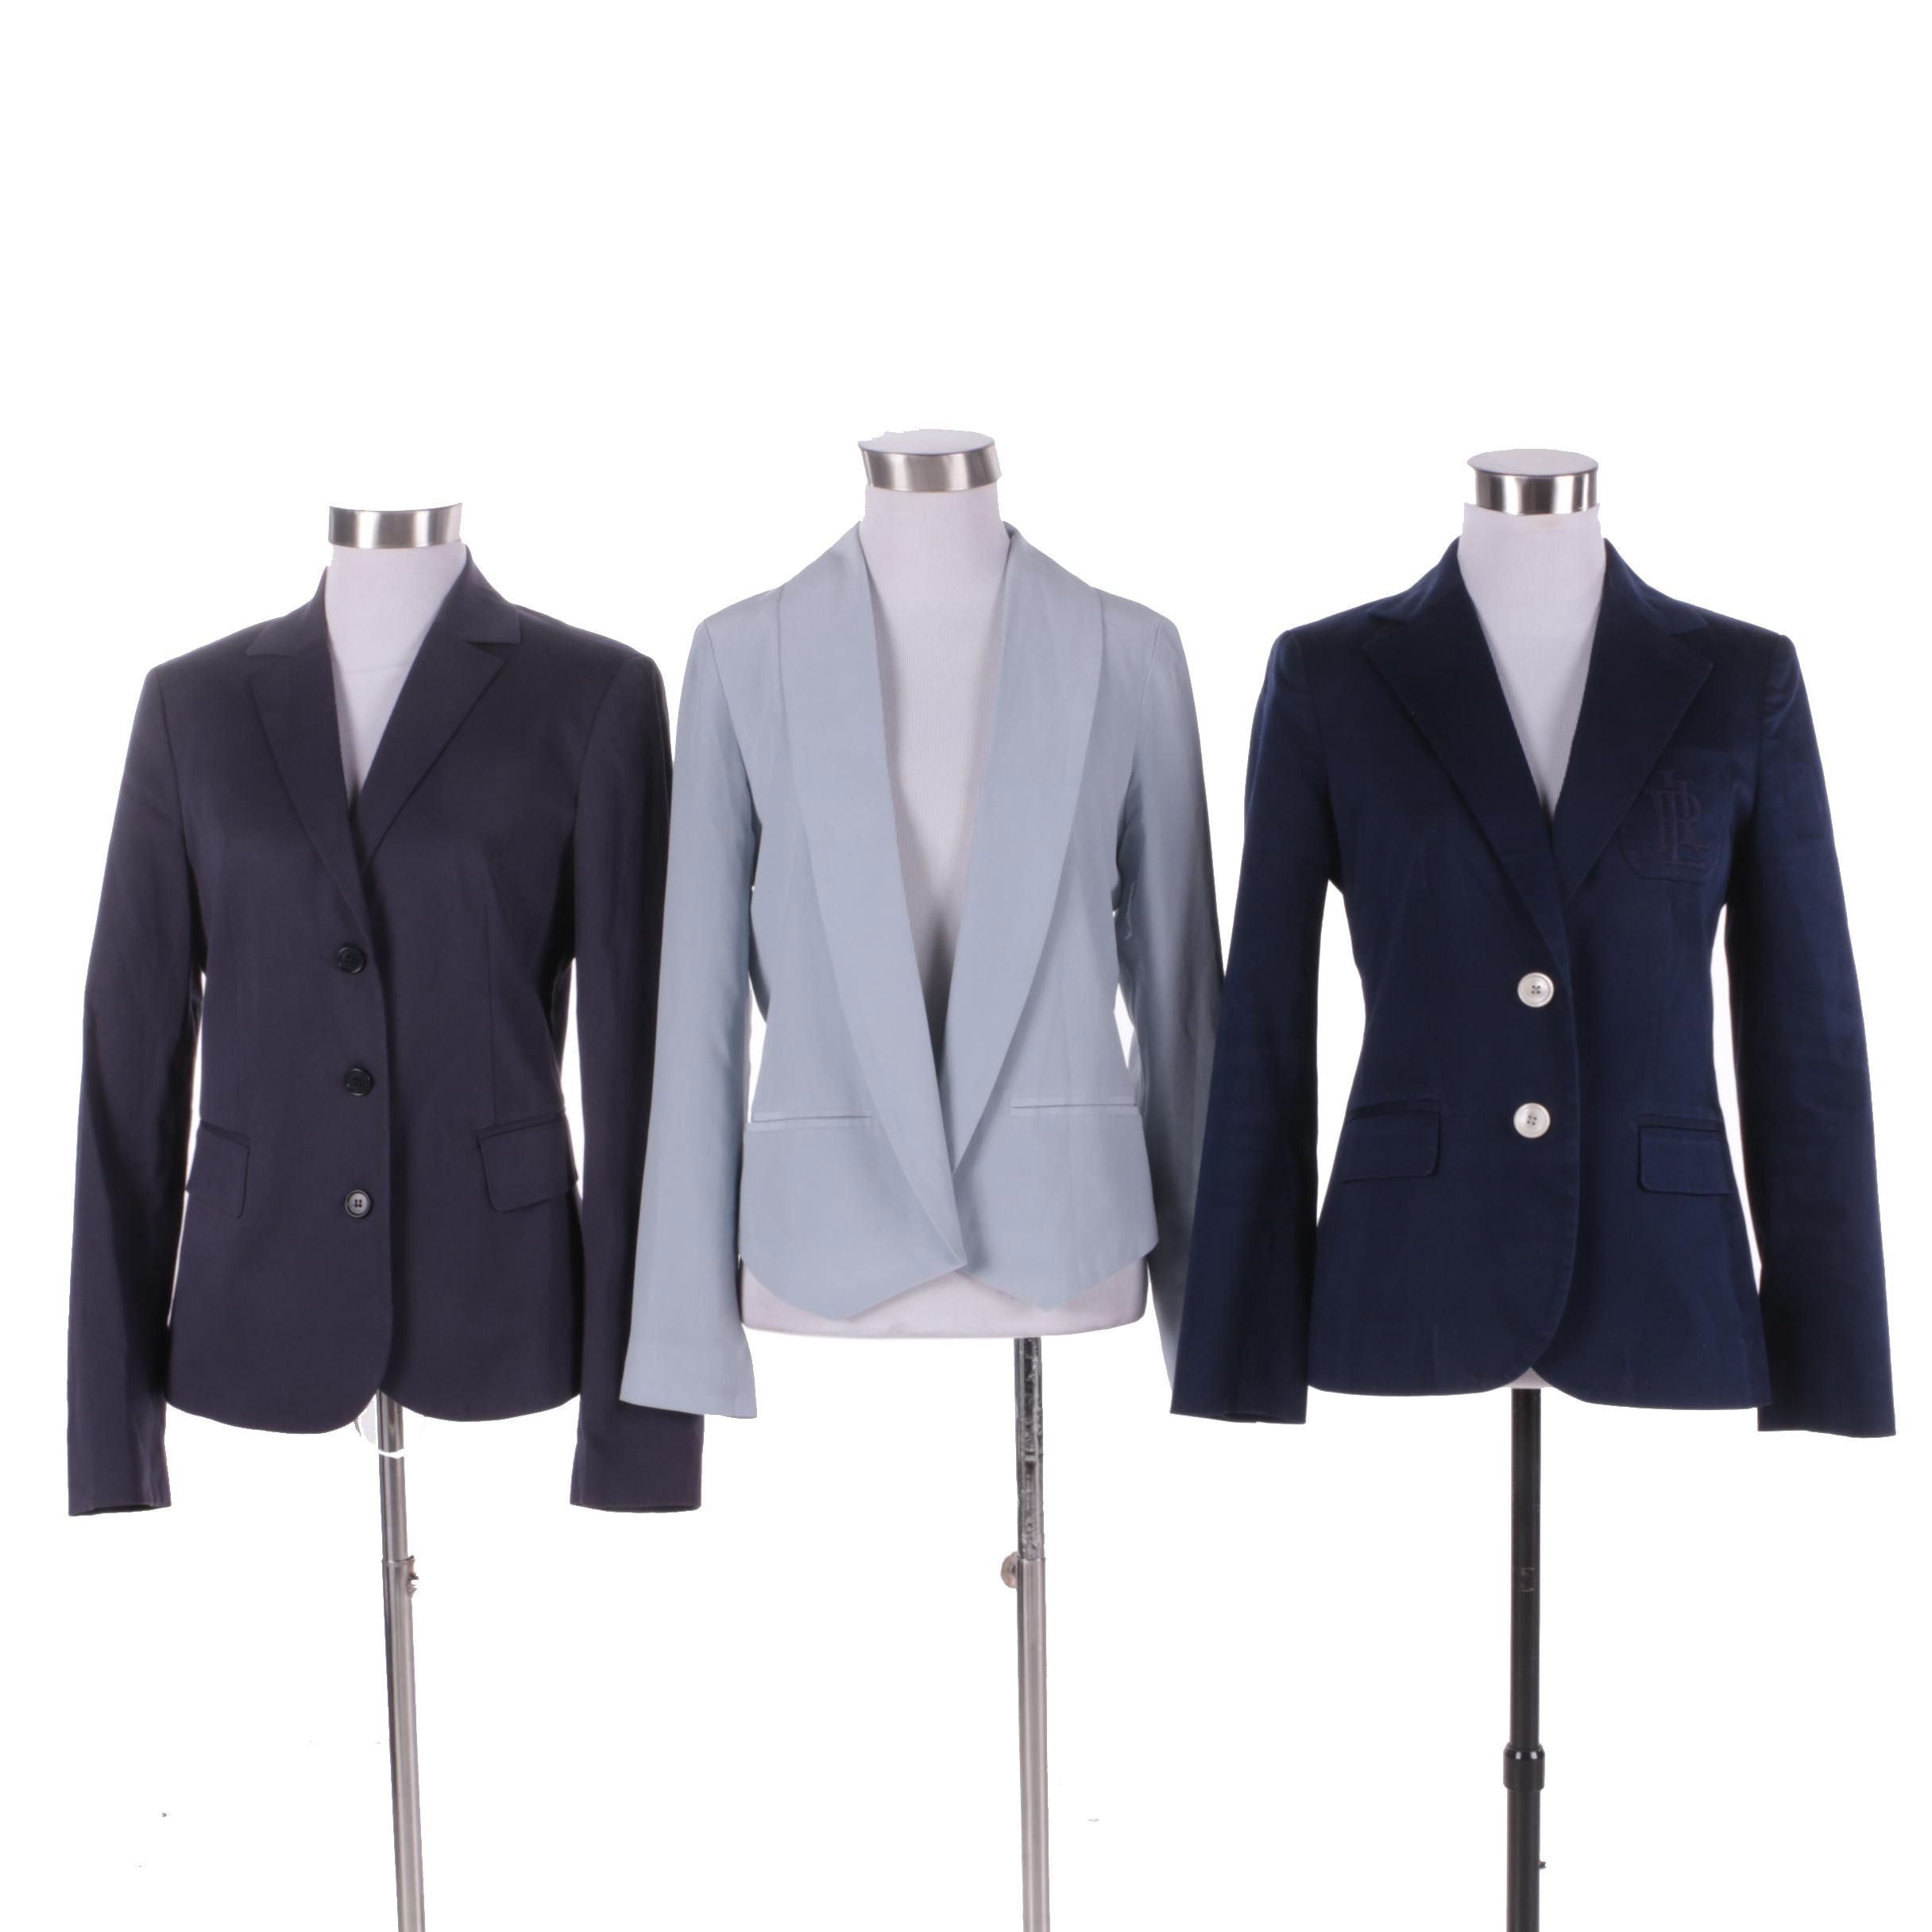 Women's Blazer and Jackets Including Cynthia Rowley